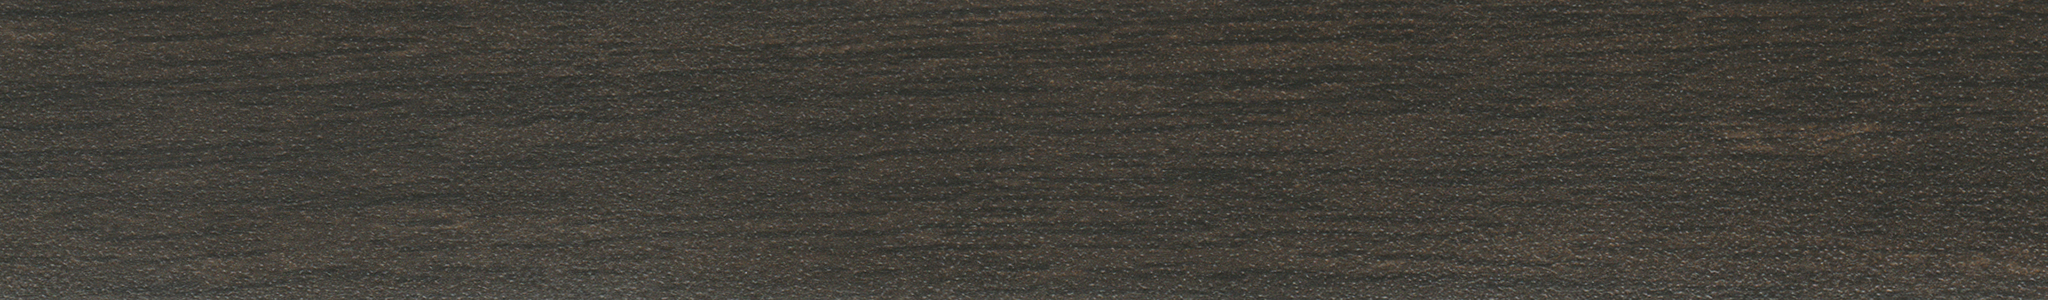 HD 282229 Chant ABS Wenge Perle